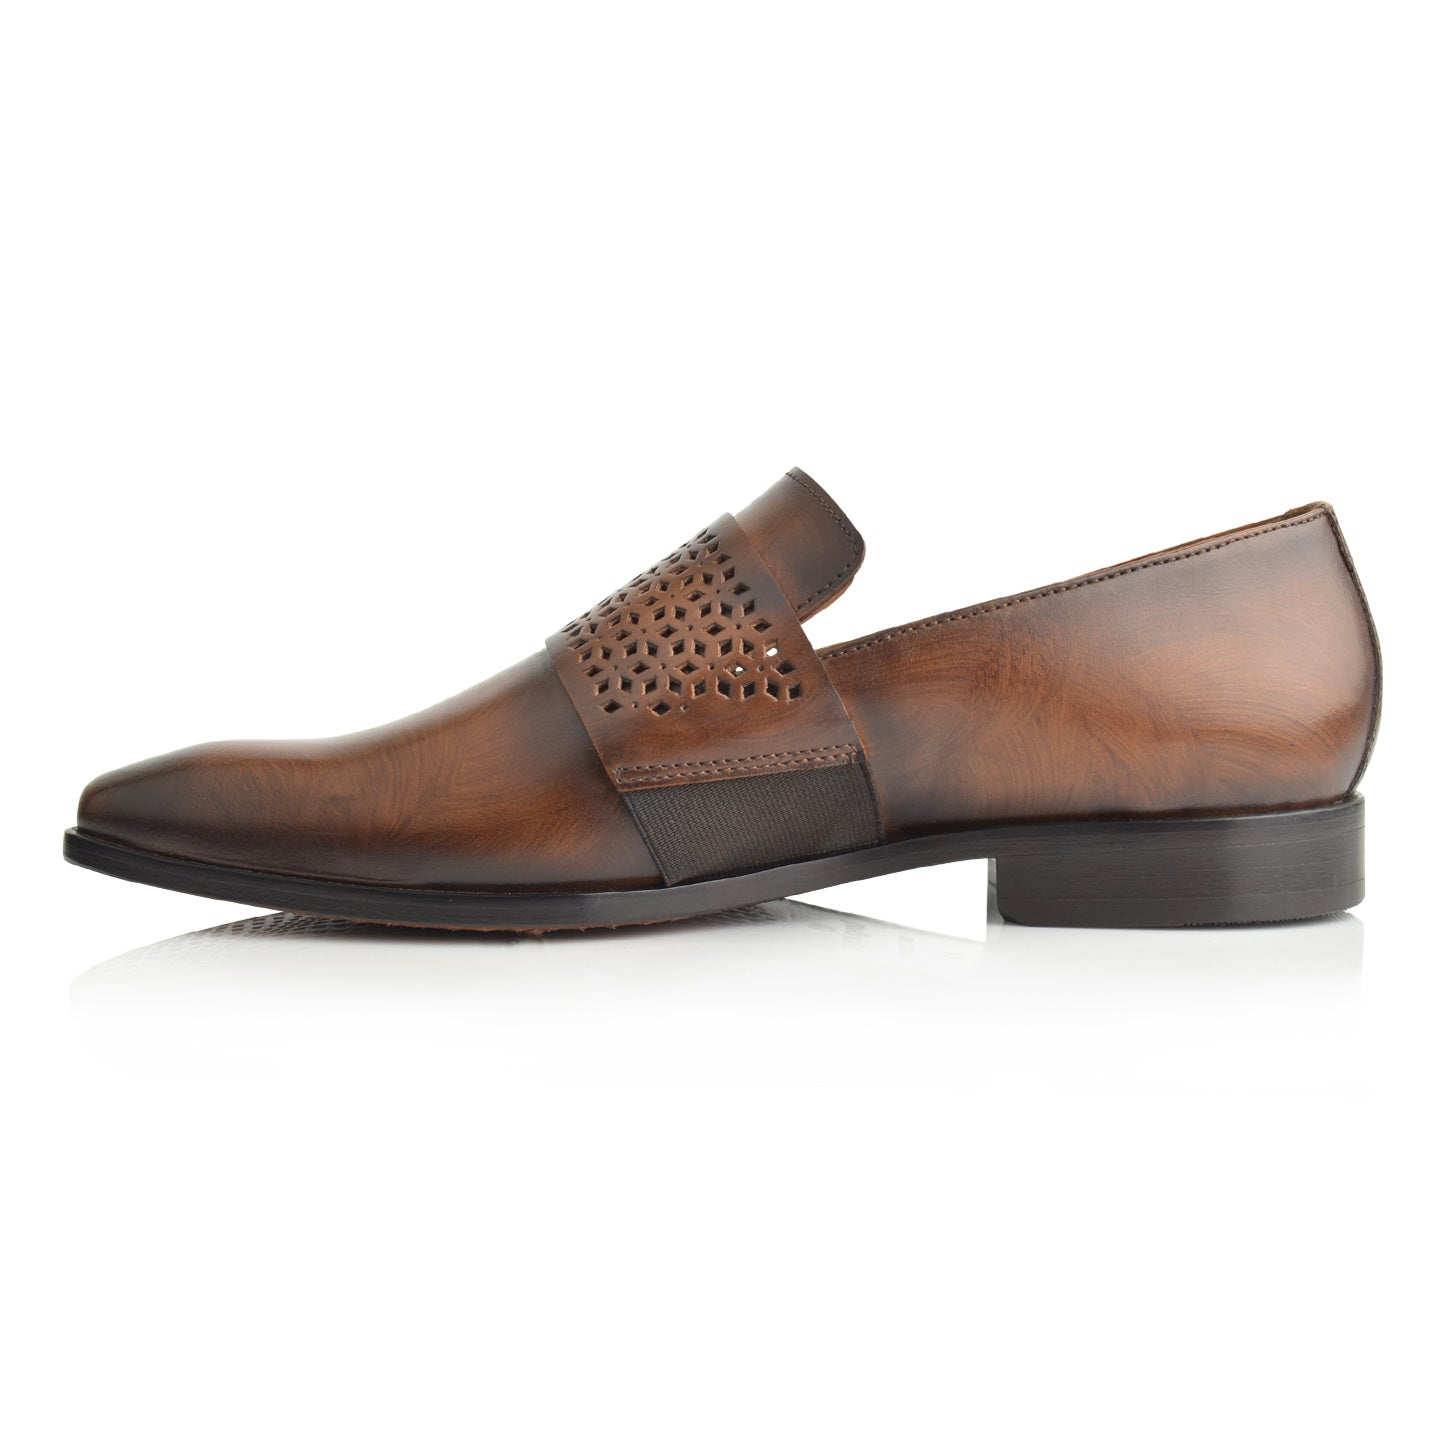 LM865 - Language Hiton Men's Brown  Dress Loafers